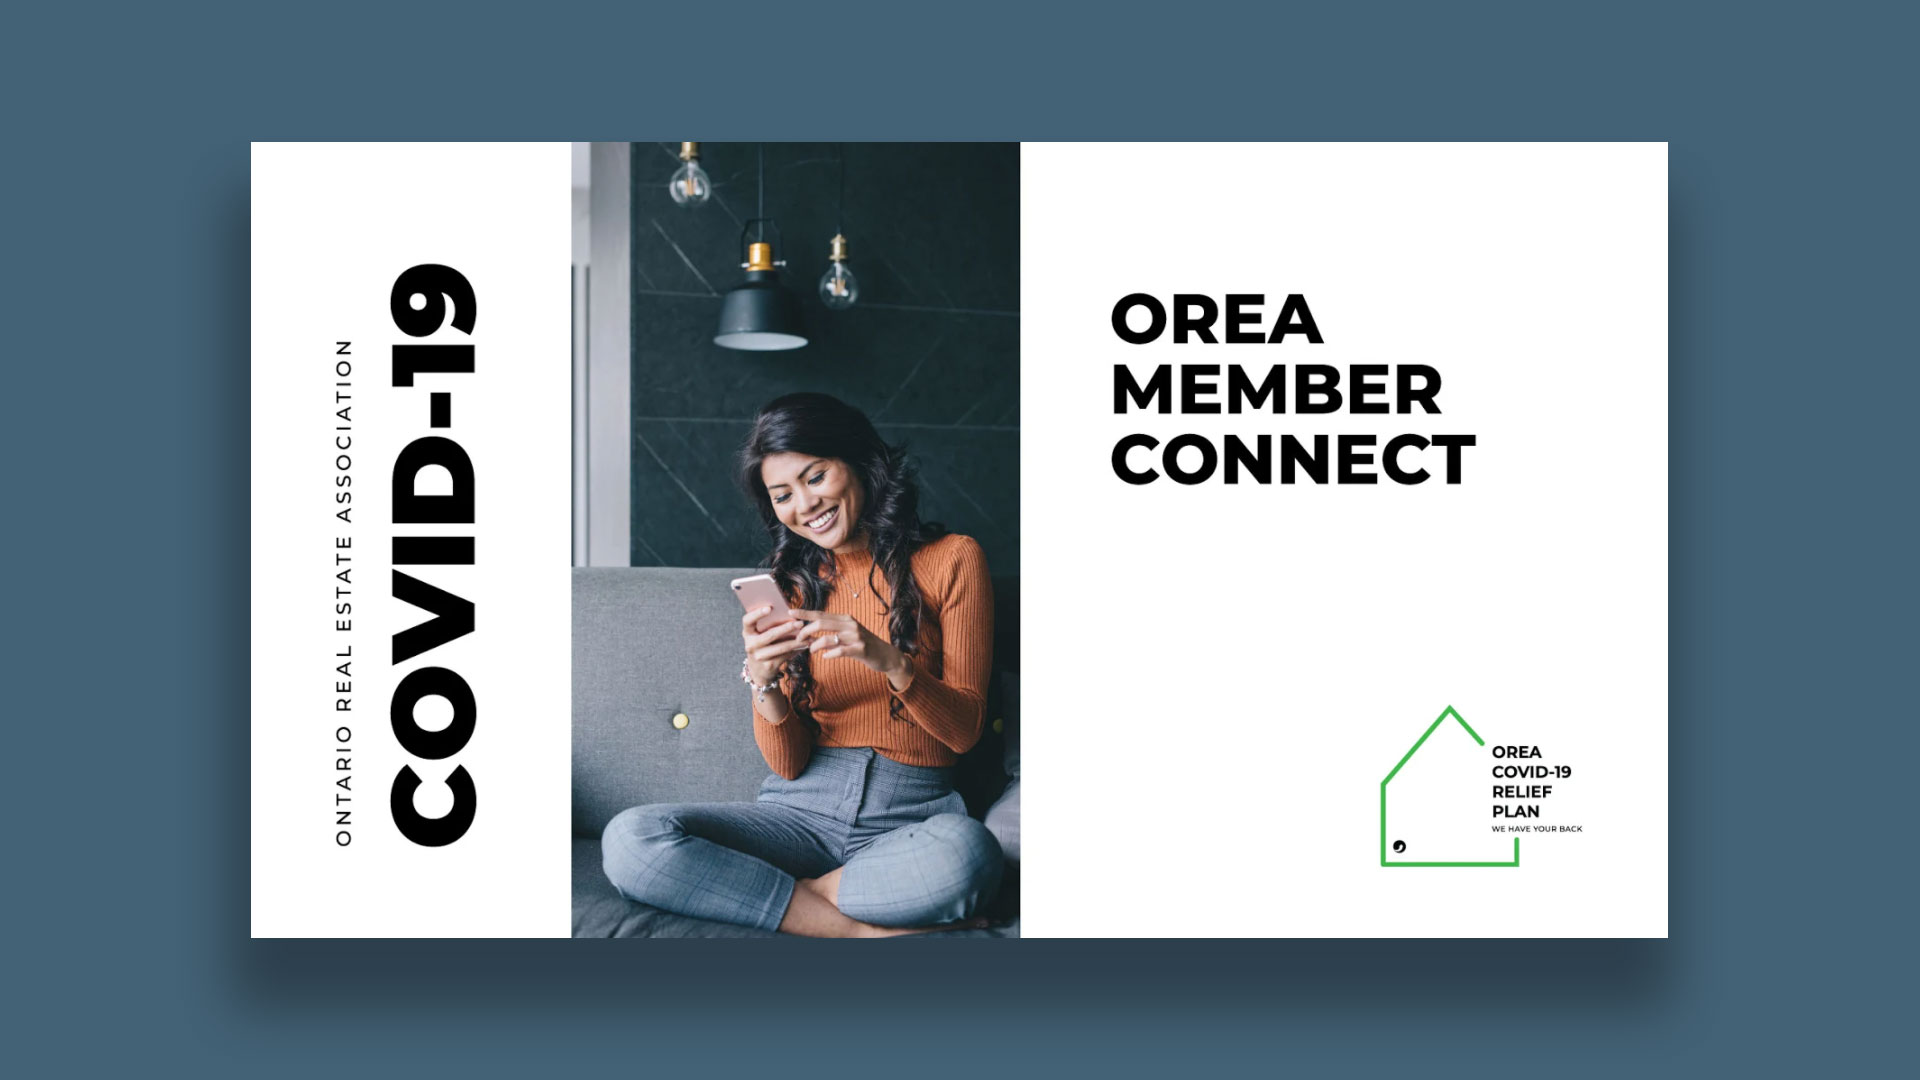 Graphic related to OREA Member Connect